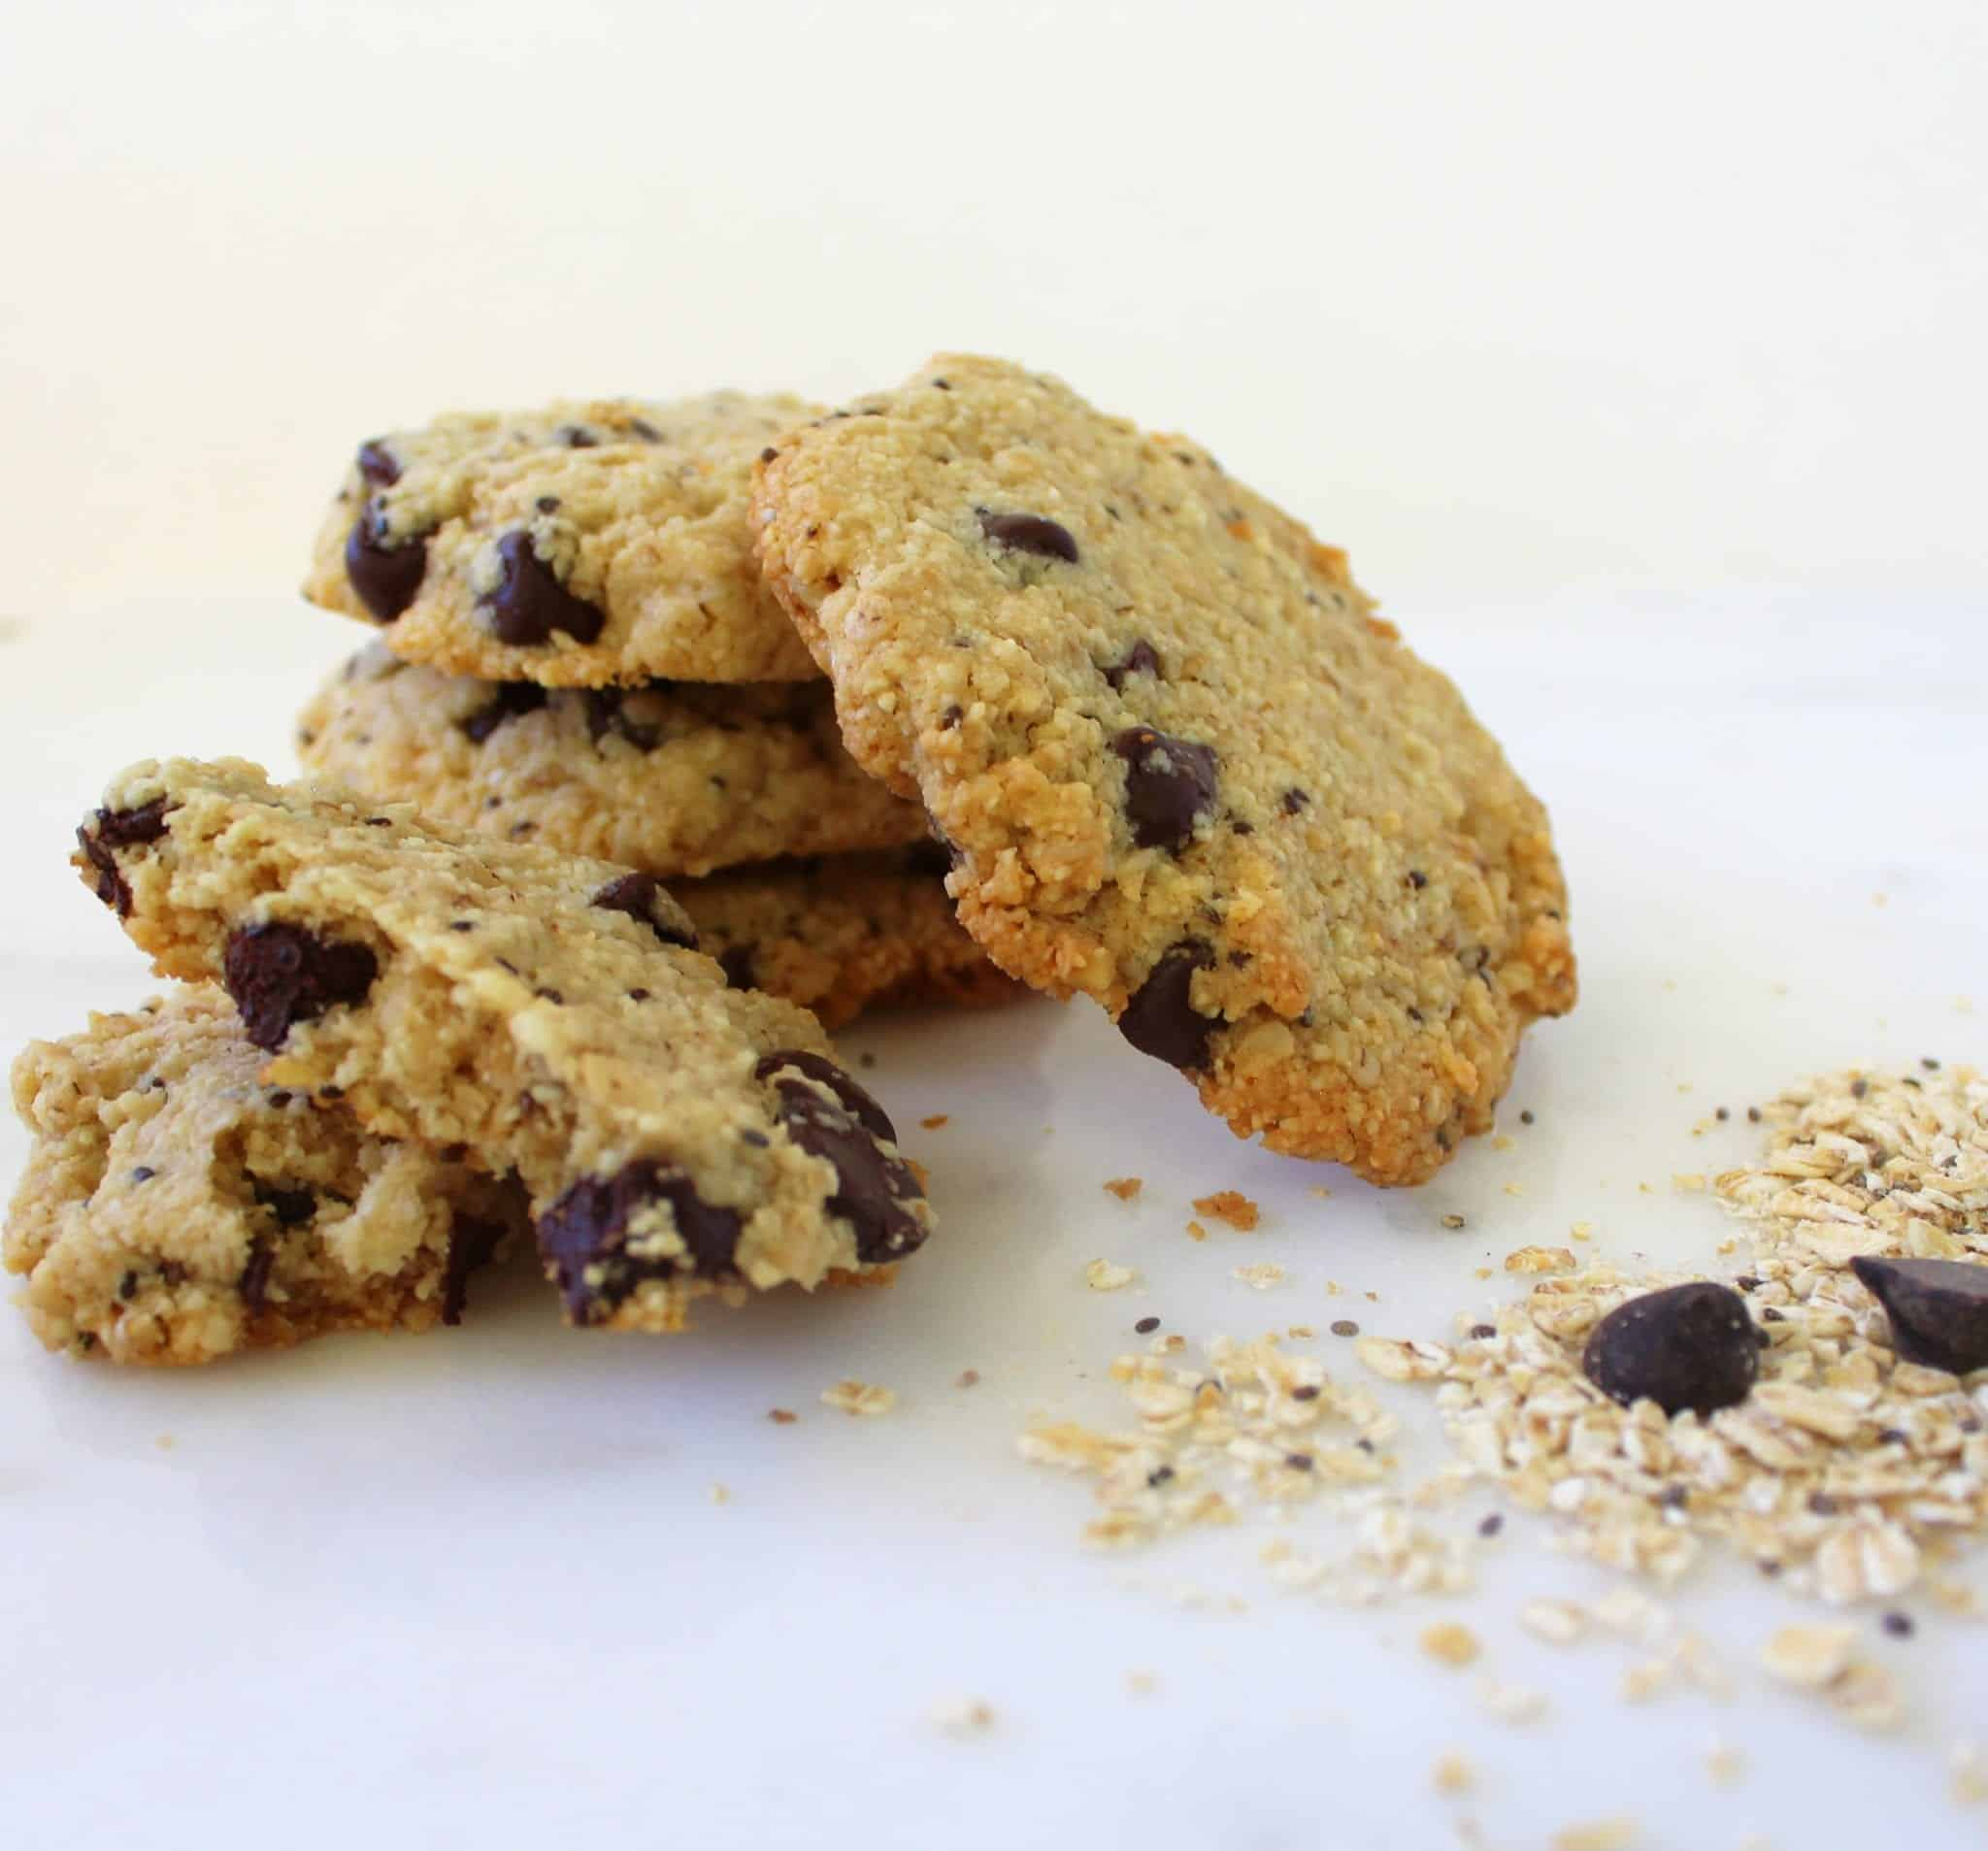 Super Oats Cookies from Treble in the Kitchen